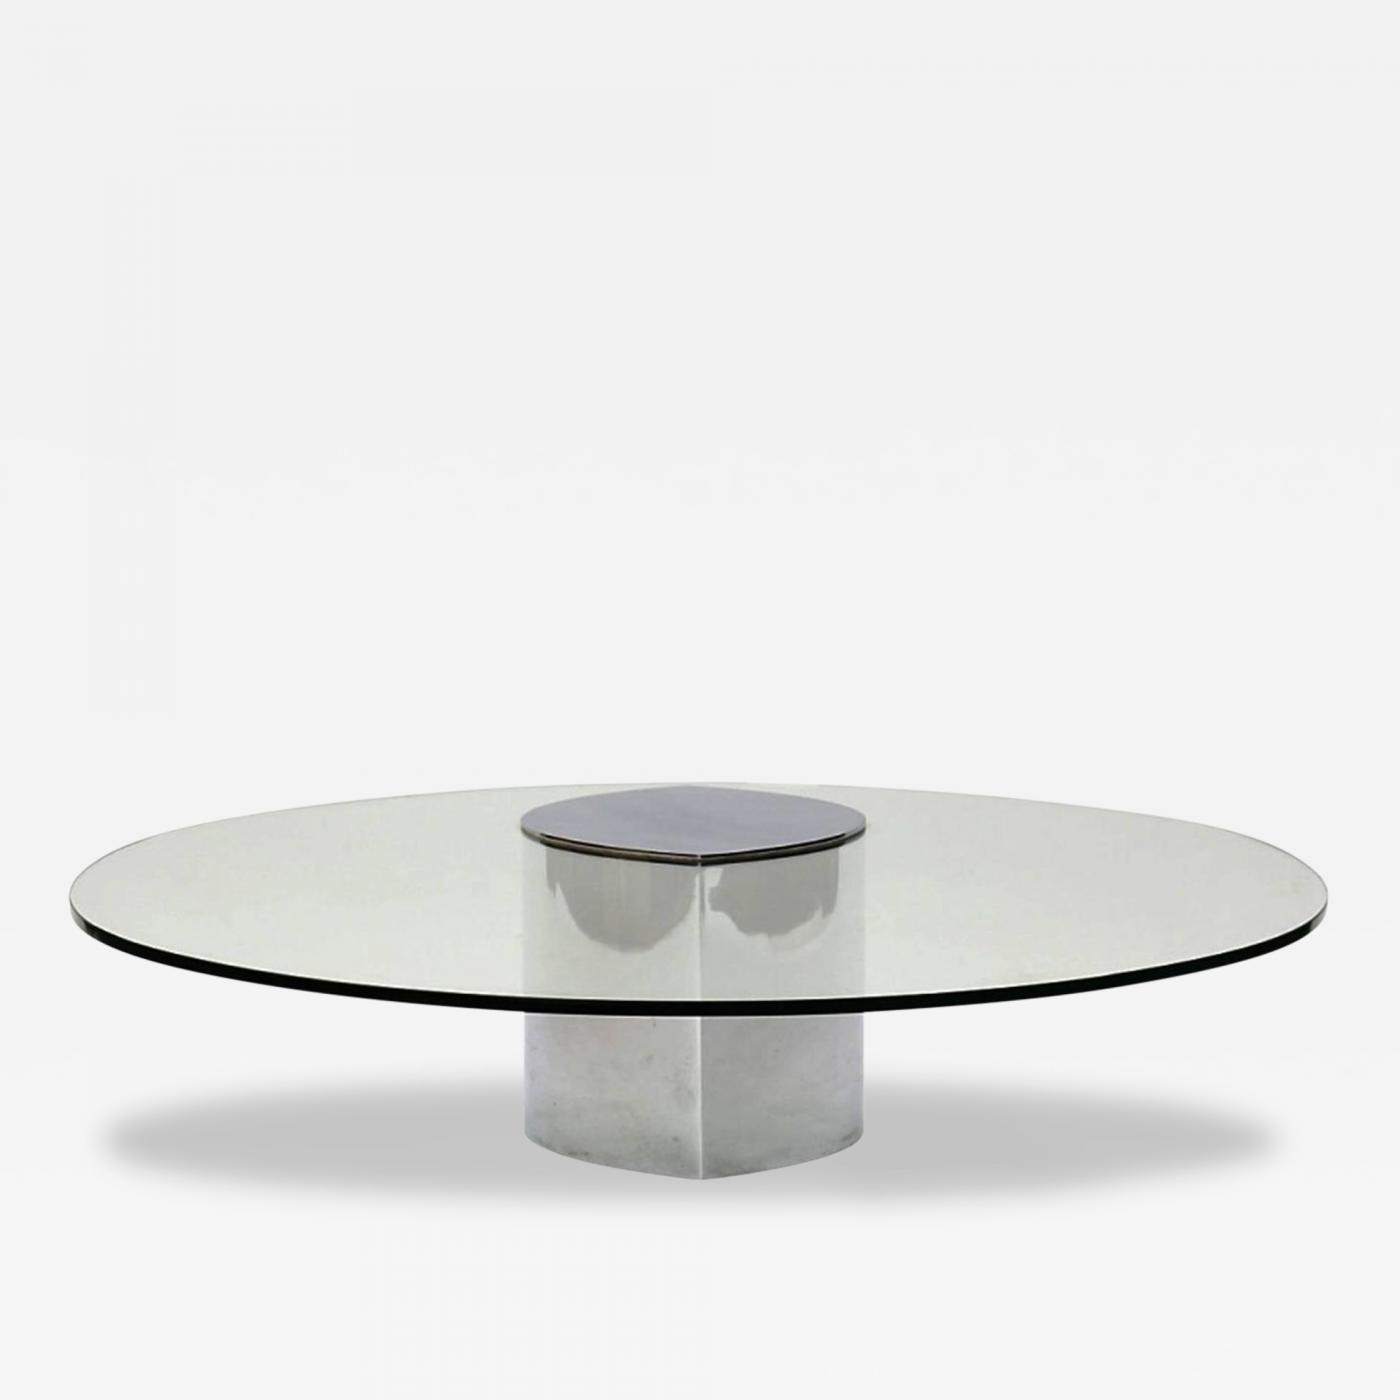 craft pin surface sanfrid table durable clean possible steel keep stainless easy godvin strong tables to idea ikea